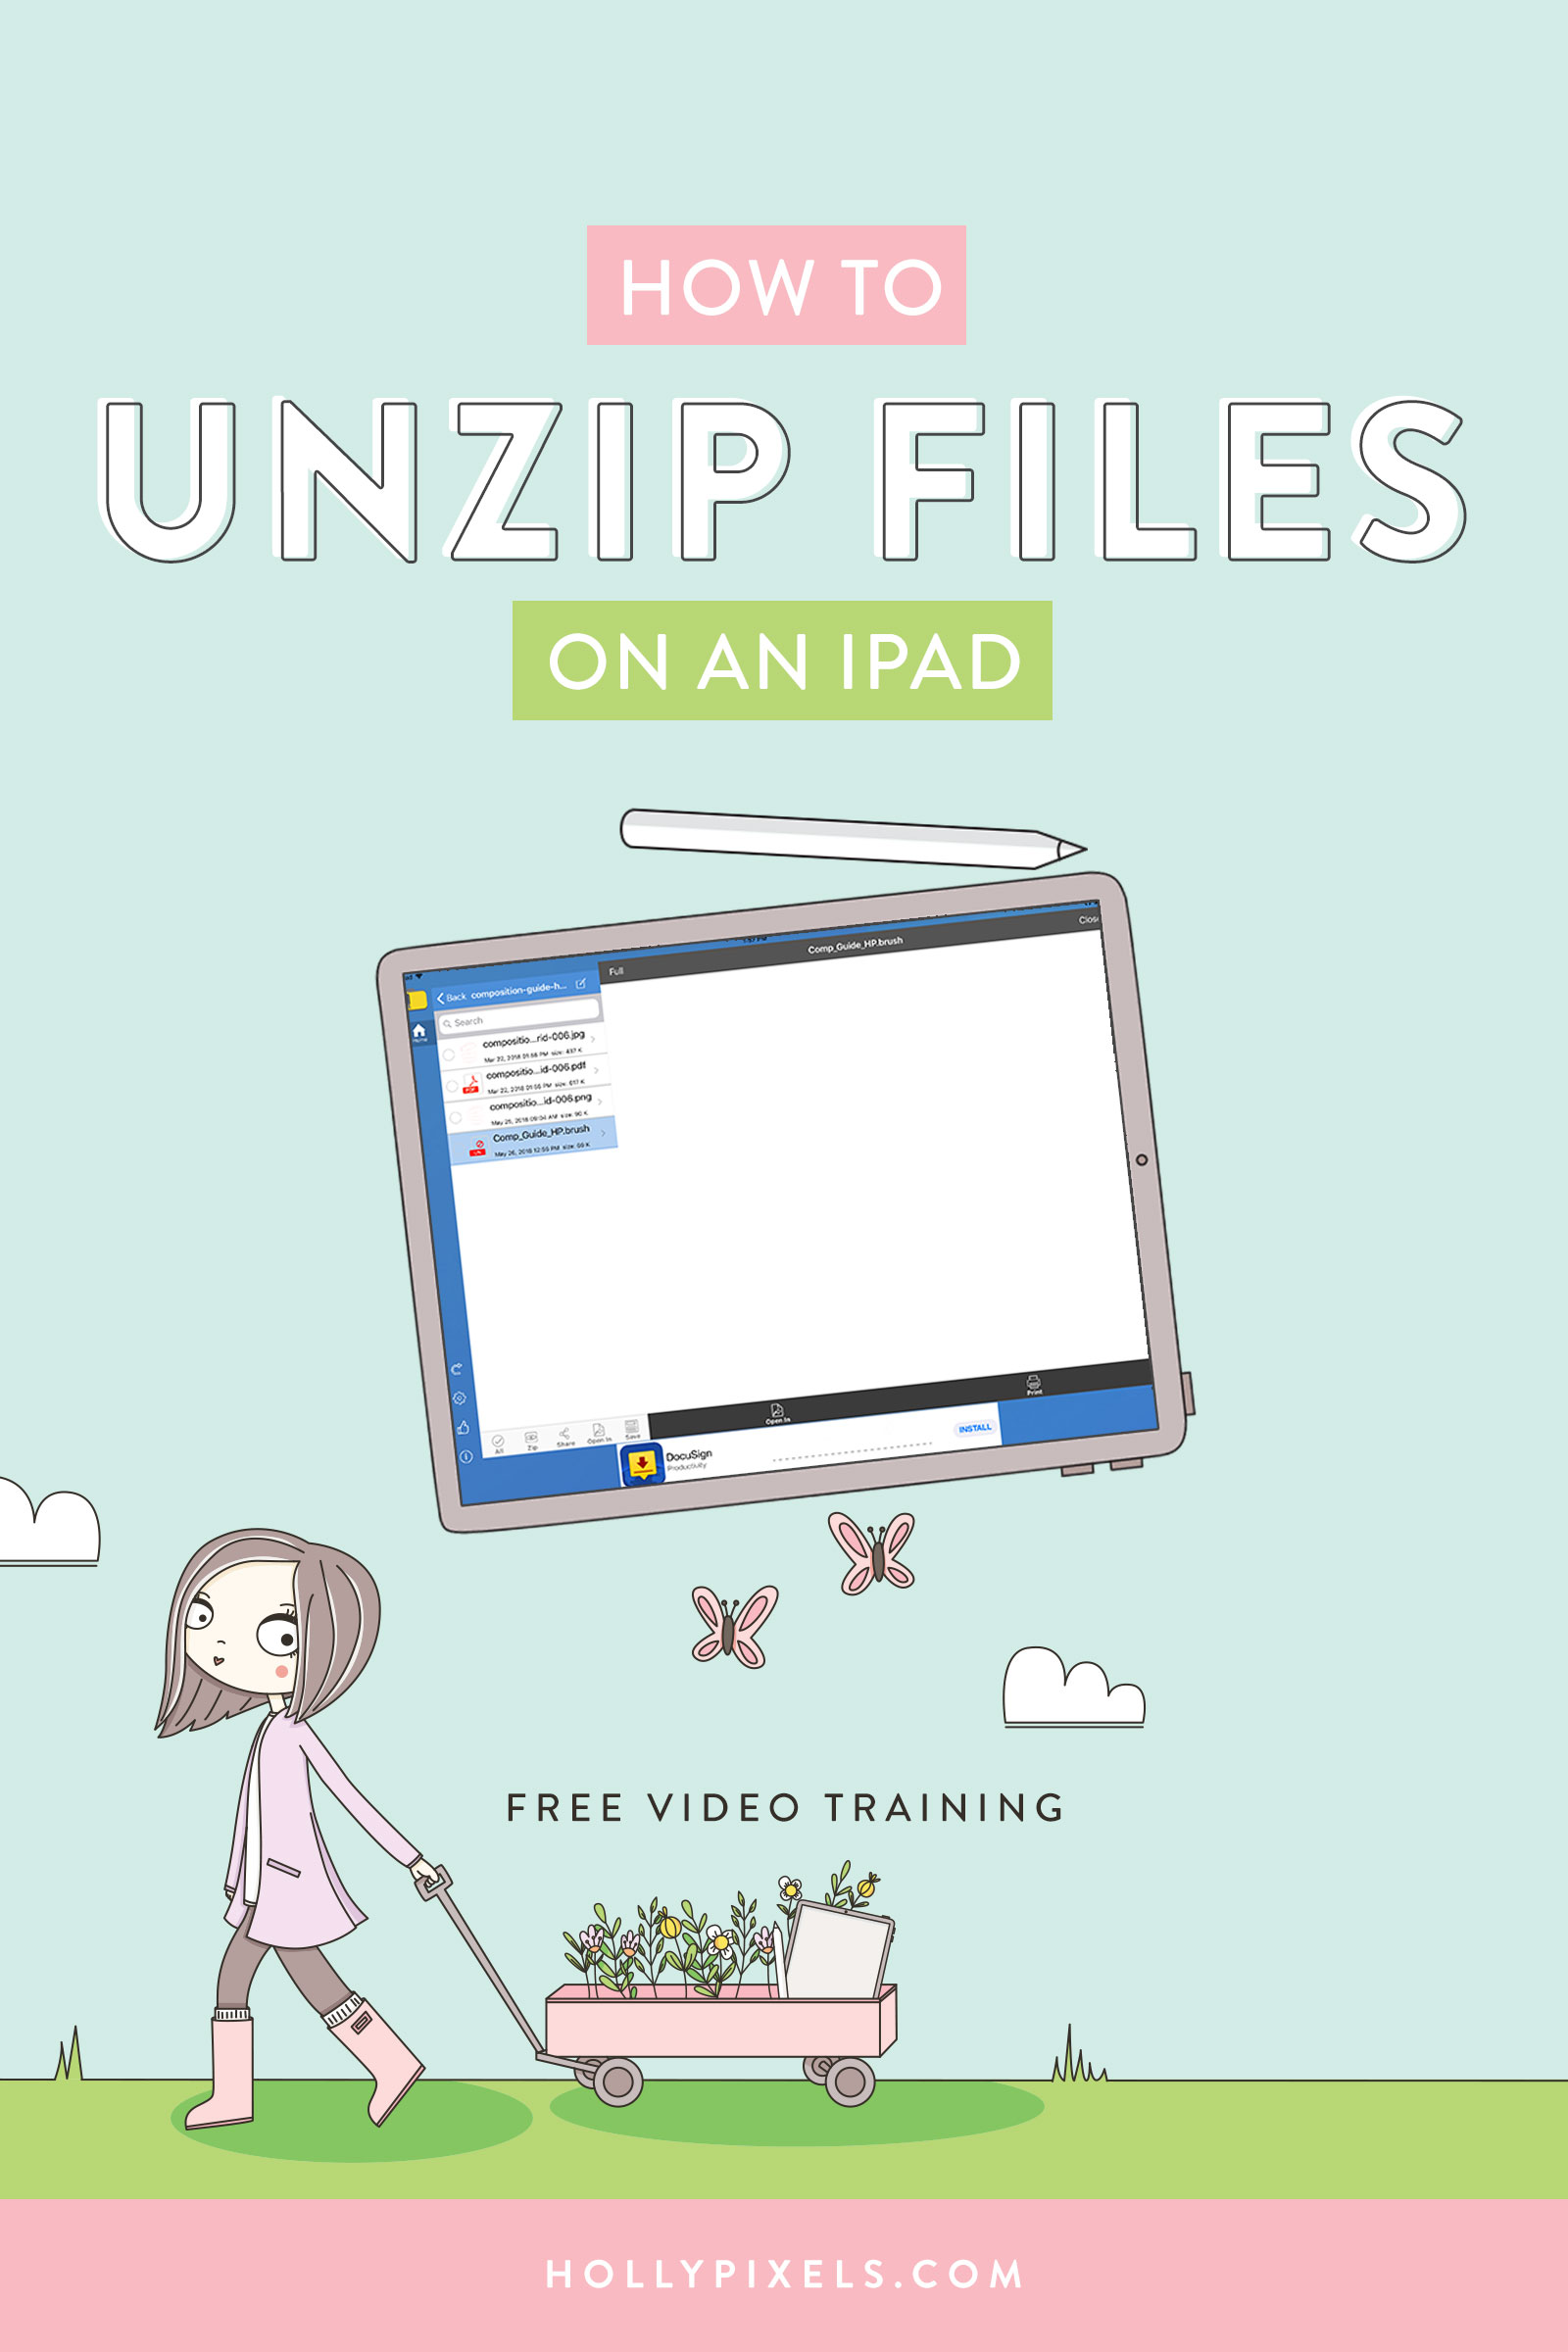 Unzipping files and understanding what the heck a zip file is can be confusing if it's not familiar to you already. I'm going to break down file extensions for you and explain what each one means as well as how to unzip using the iPad.